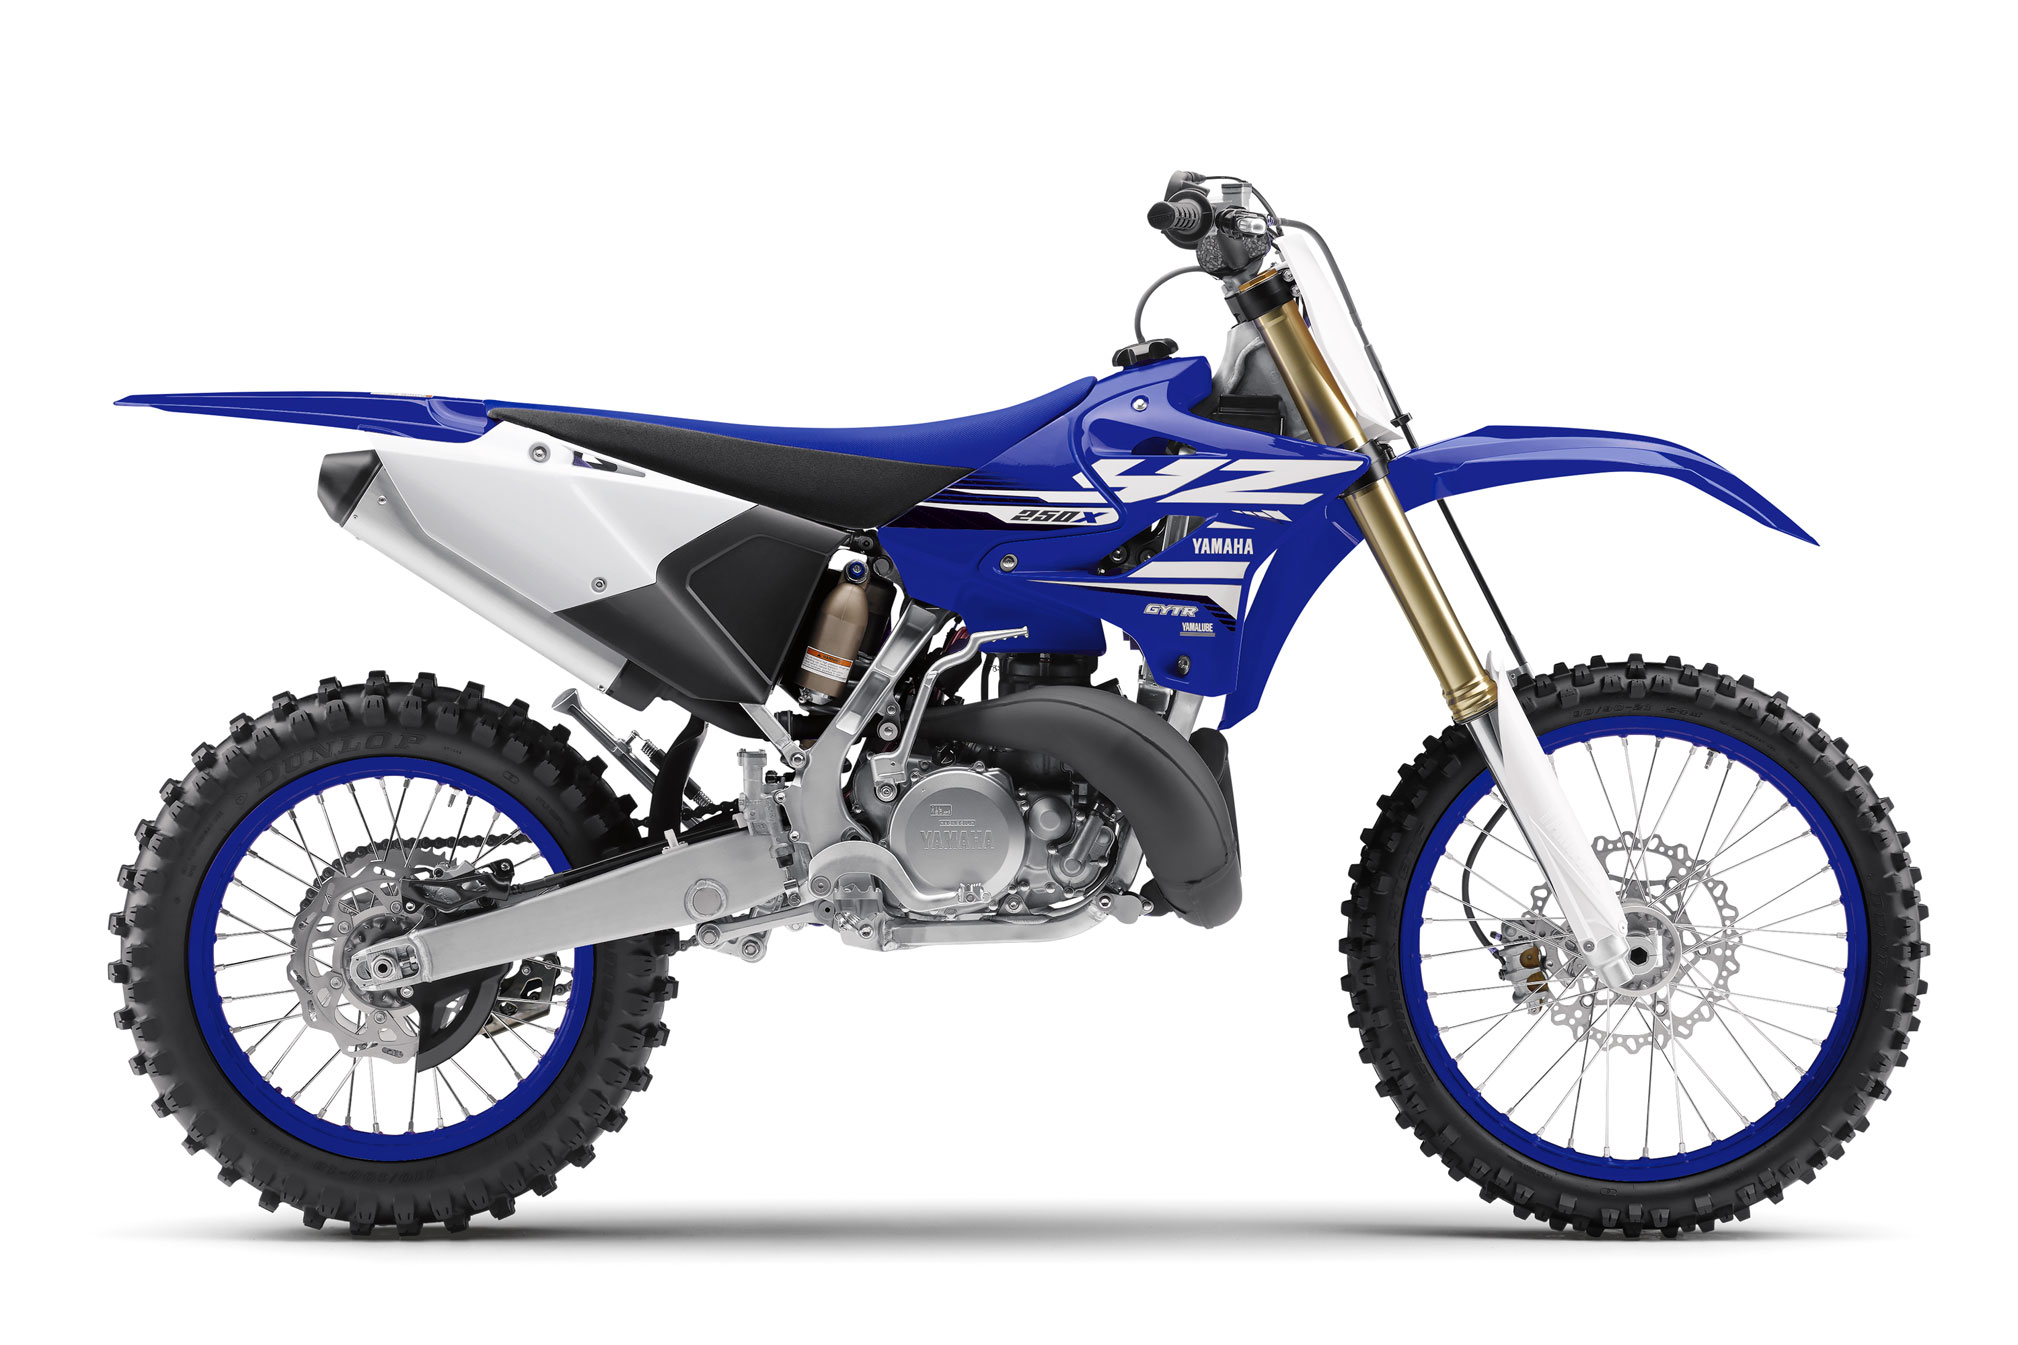 2018 yamaha yz250x review totalmotorcycle for Yamaha new motorcycles 2018